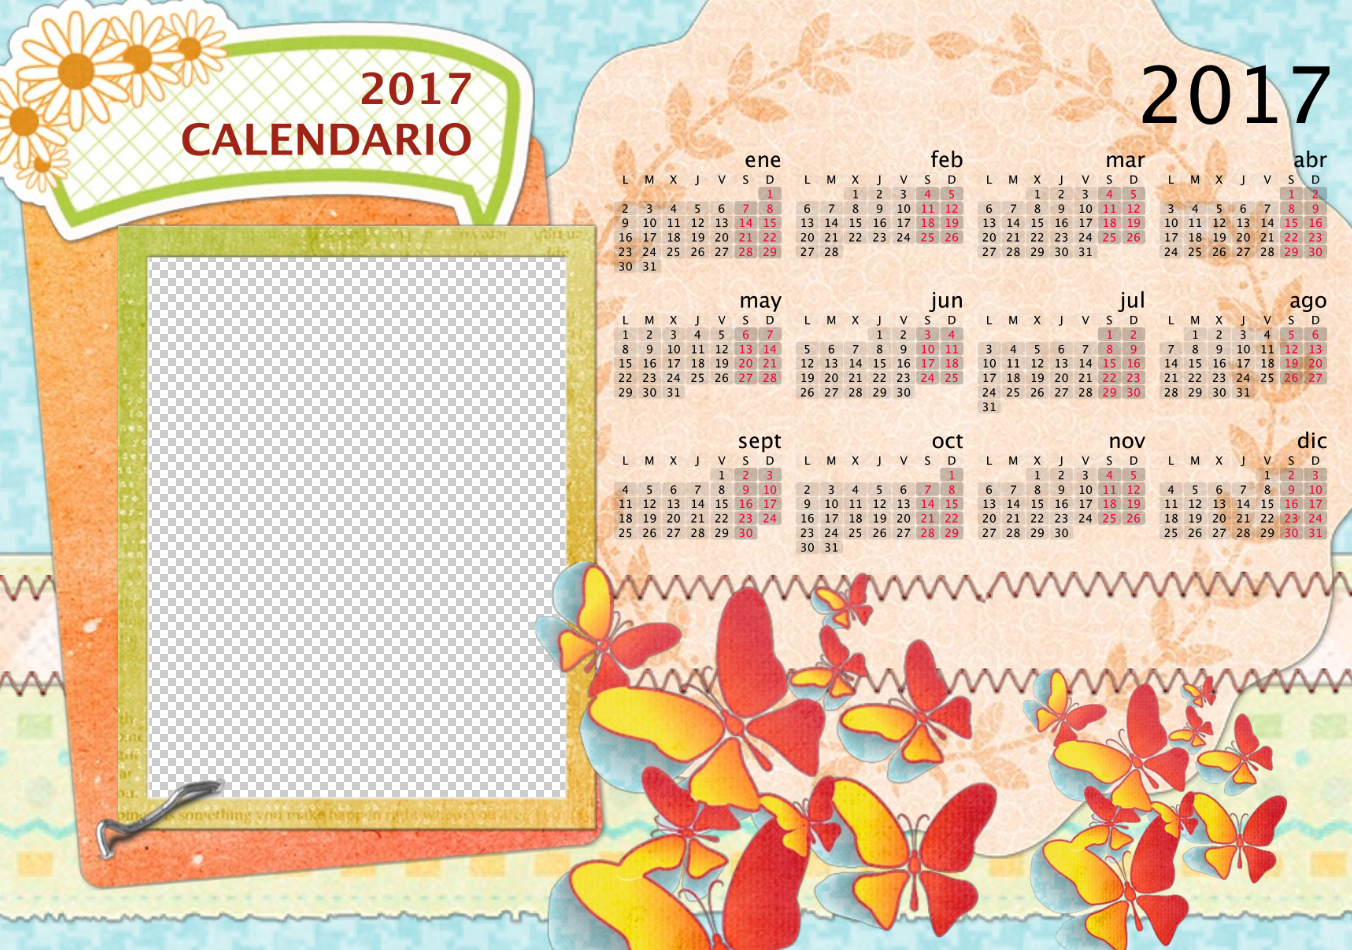 Plantillas Calendario Adobe Photoshop Archivos - Zeni Acosta ...